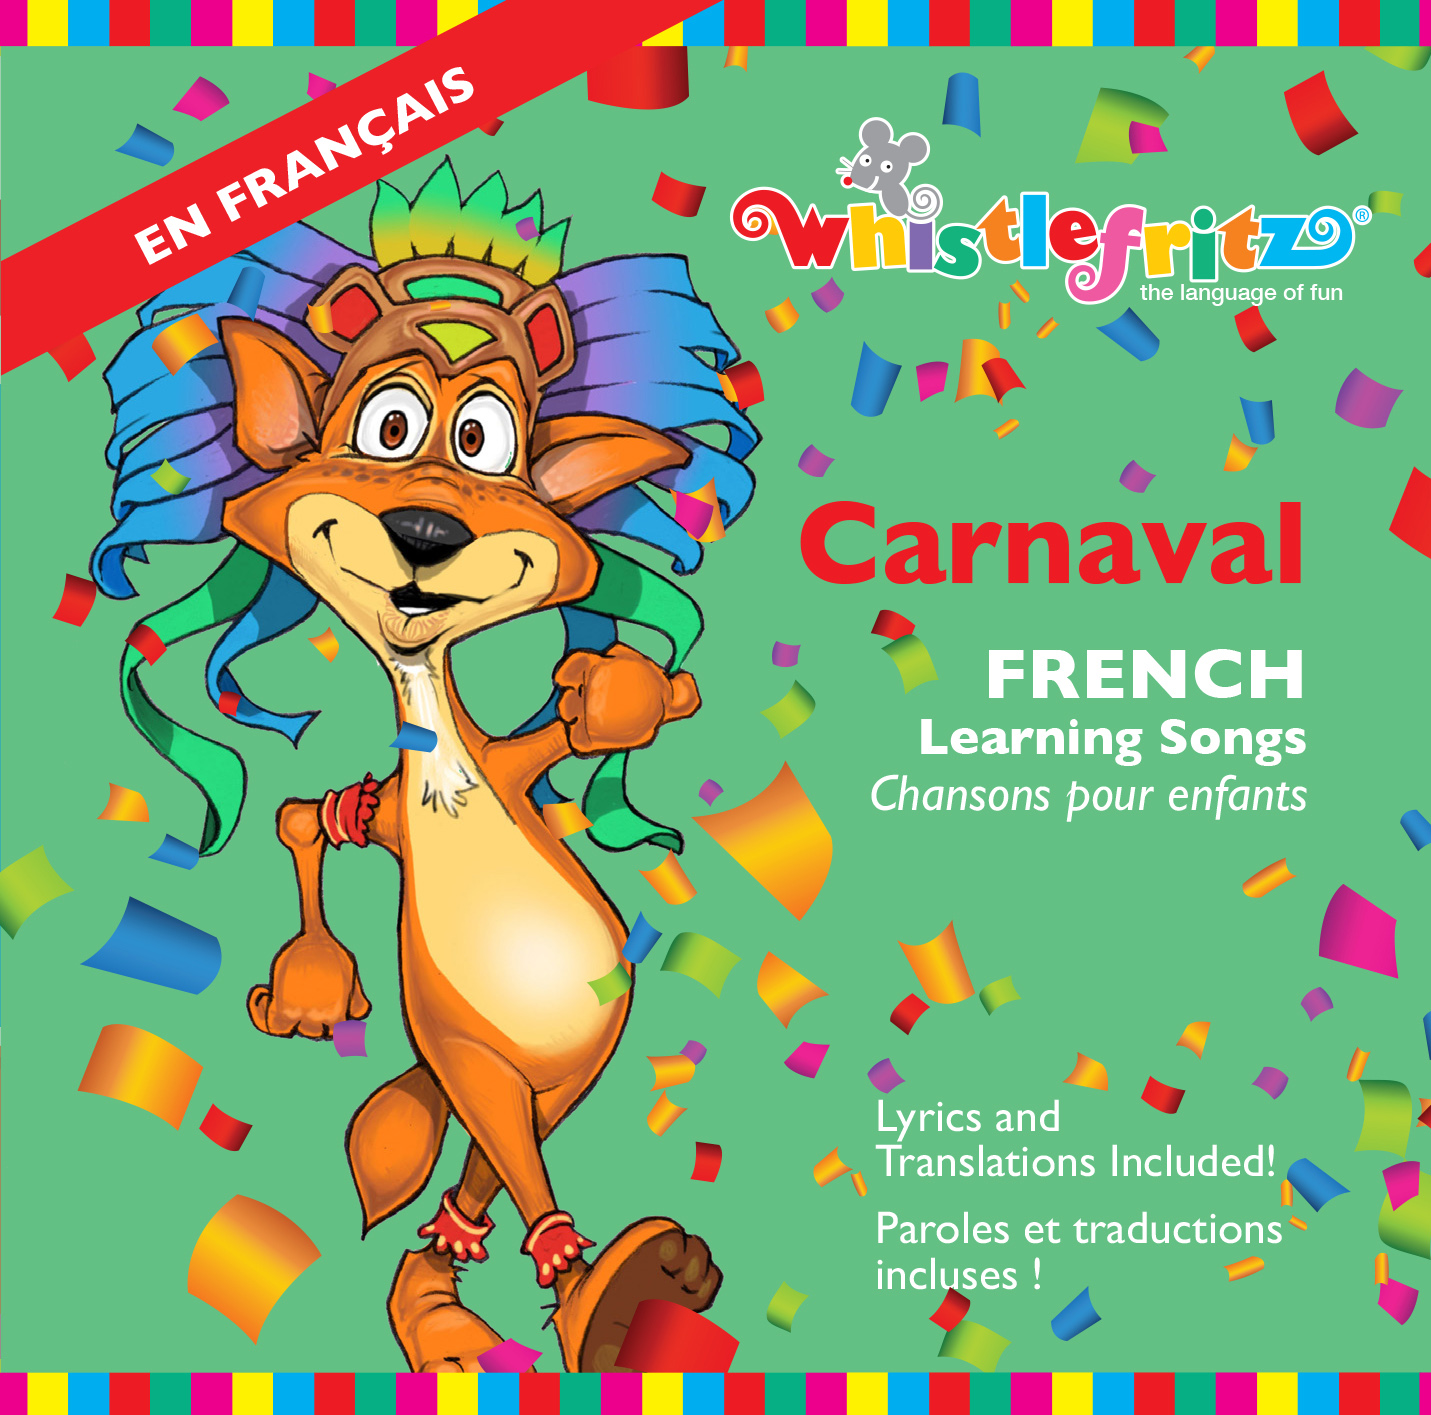 CARNAVAL — French Learning Songs